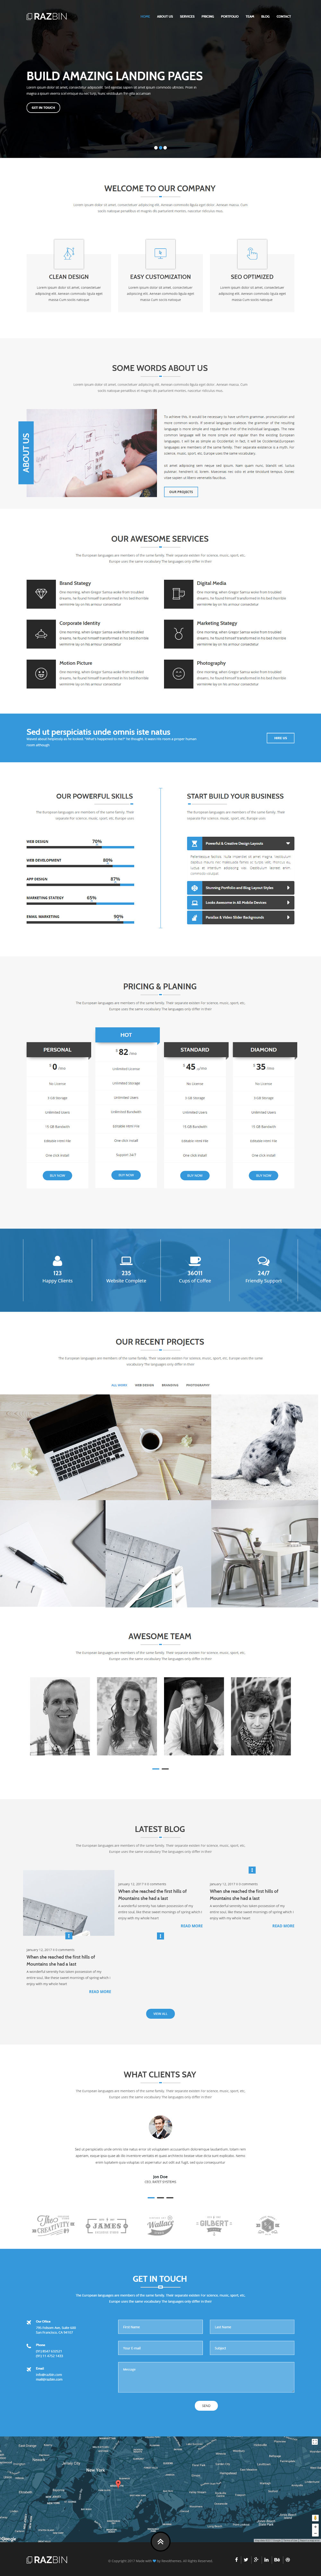 Razbin - Digital Agency Web Template